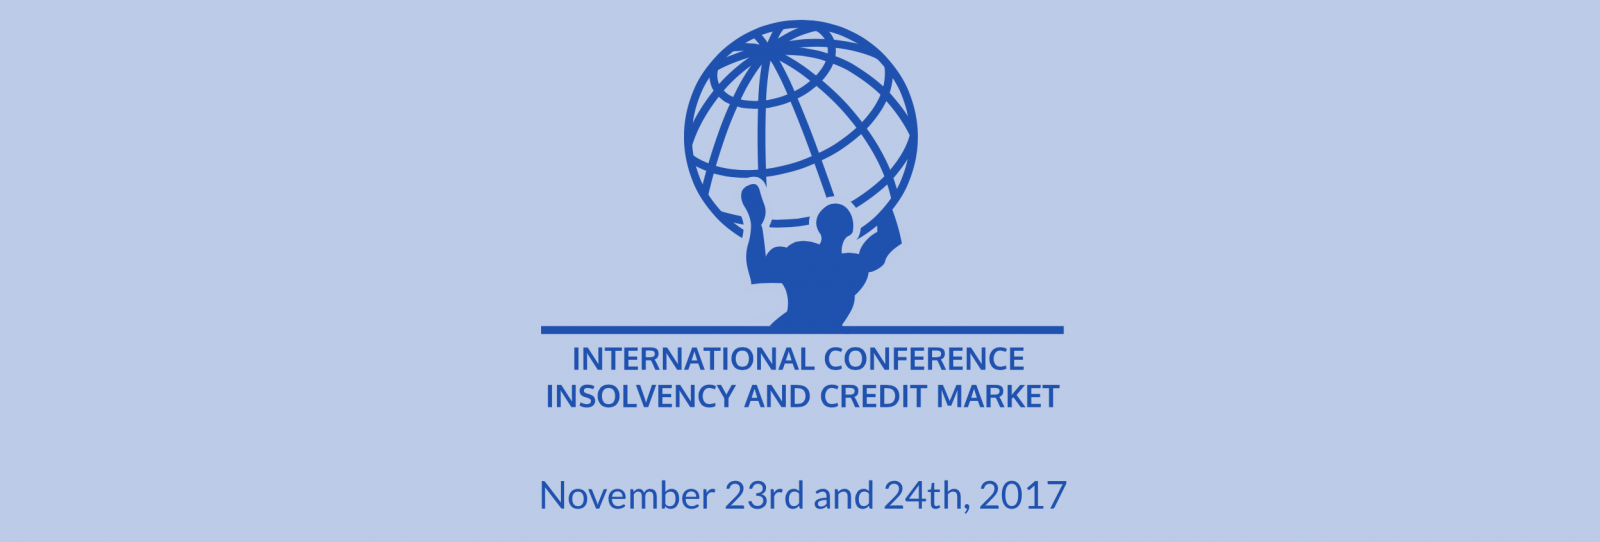 International Conference of Insolvency and Credit Market